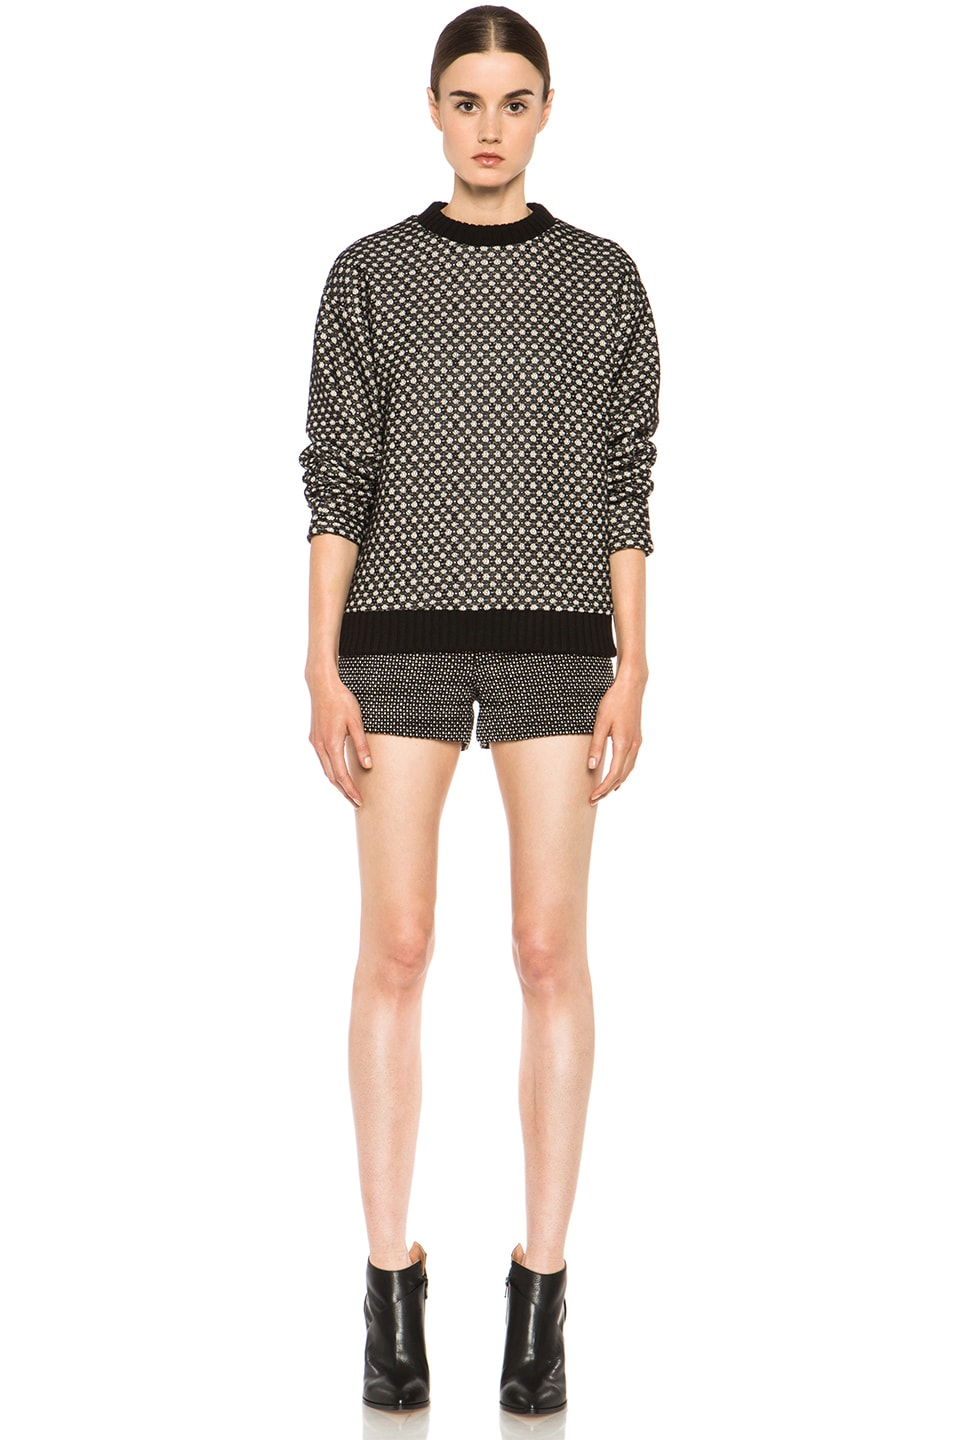 Image 5 of Derek Lam Graphic Tweed Wool Shorts in Black & White